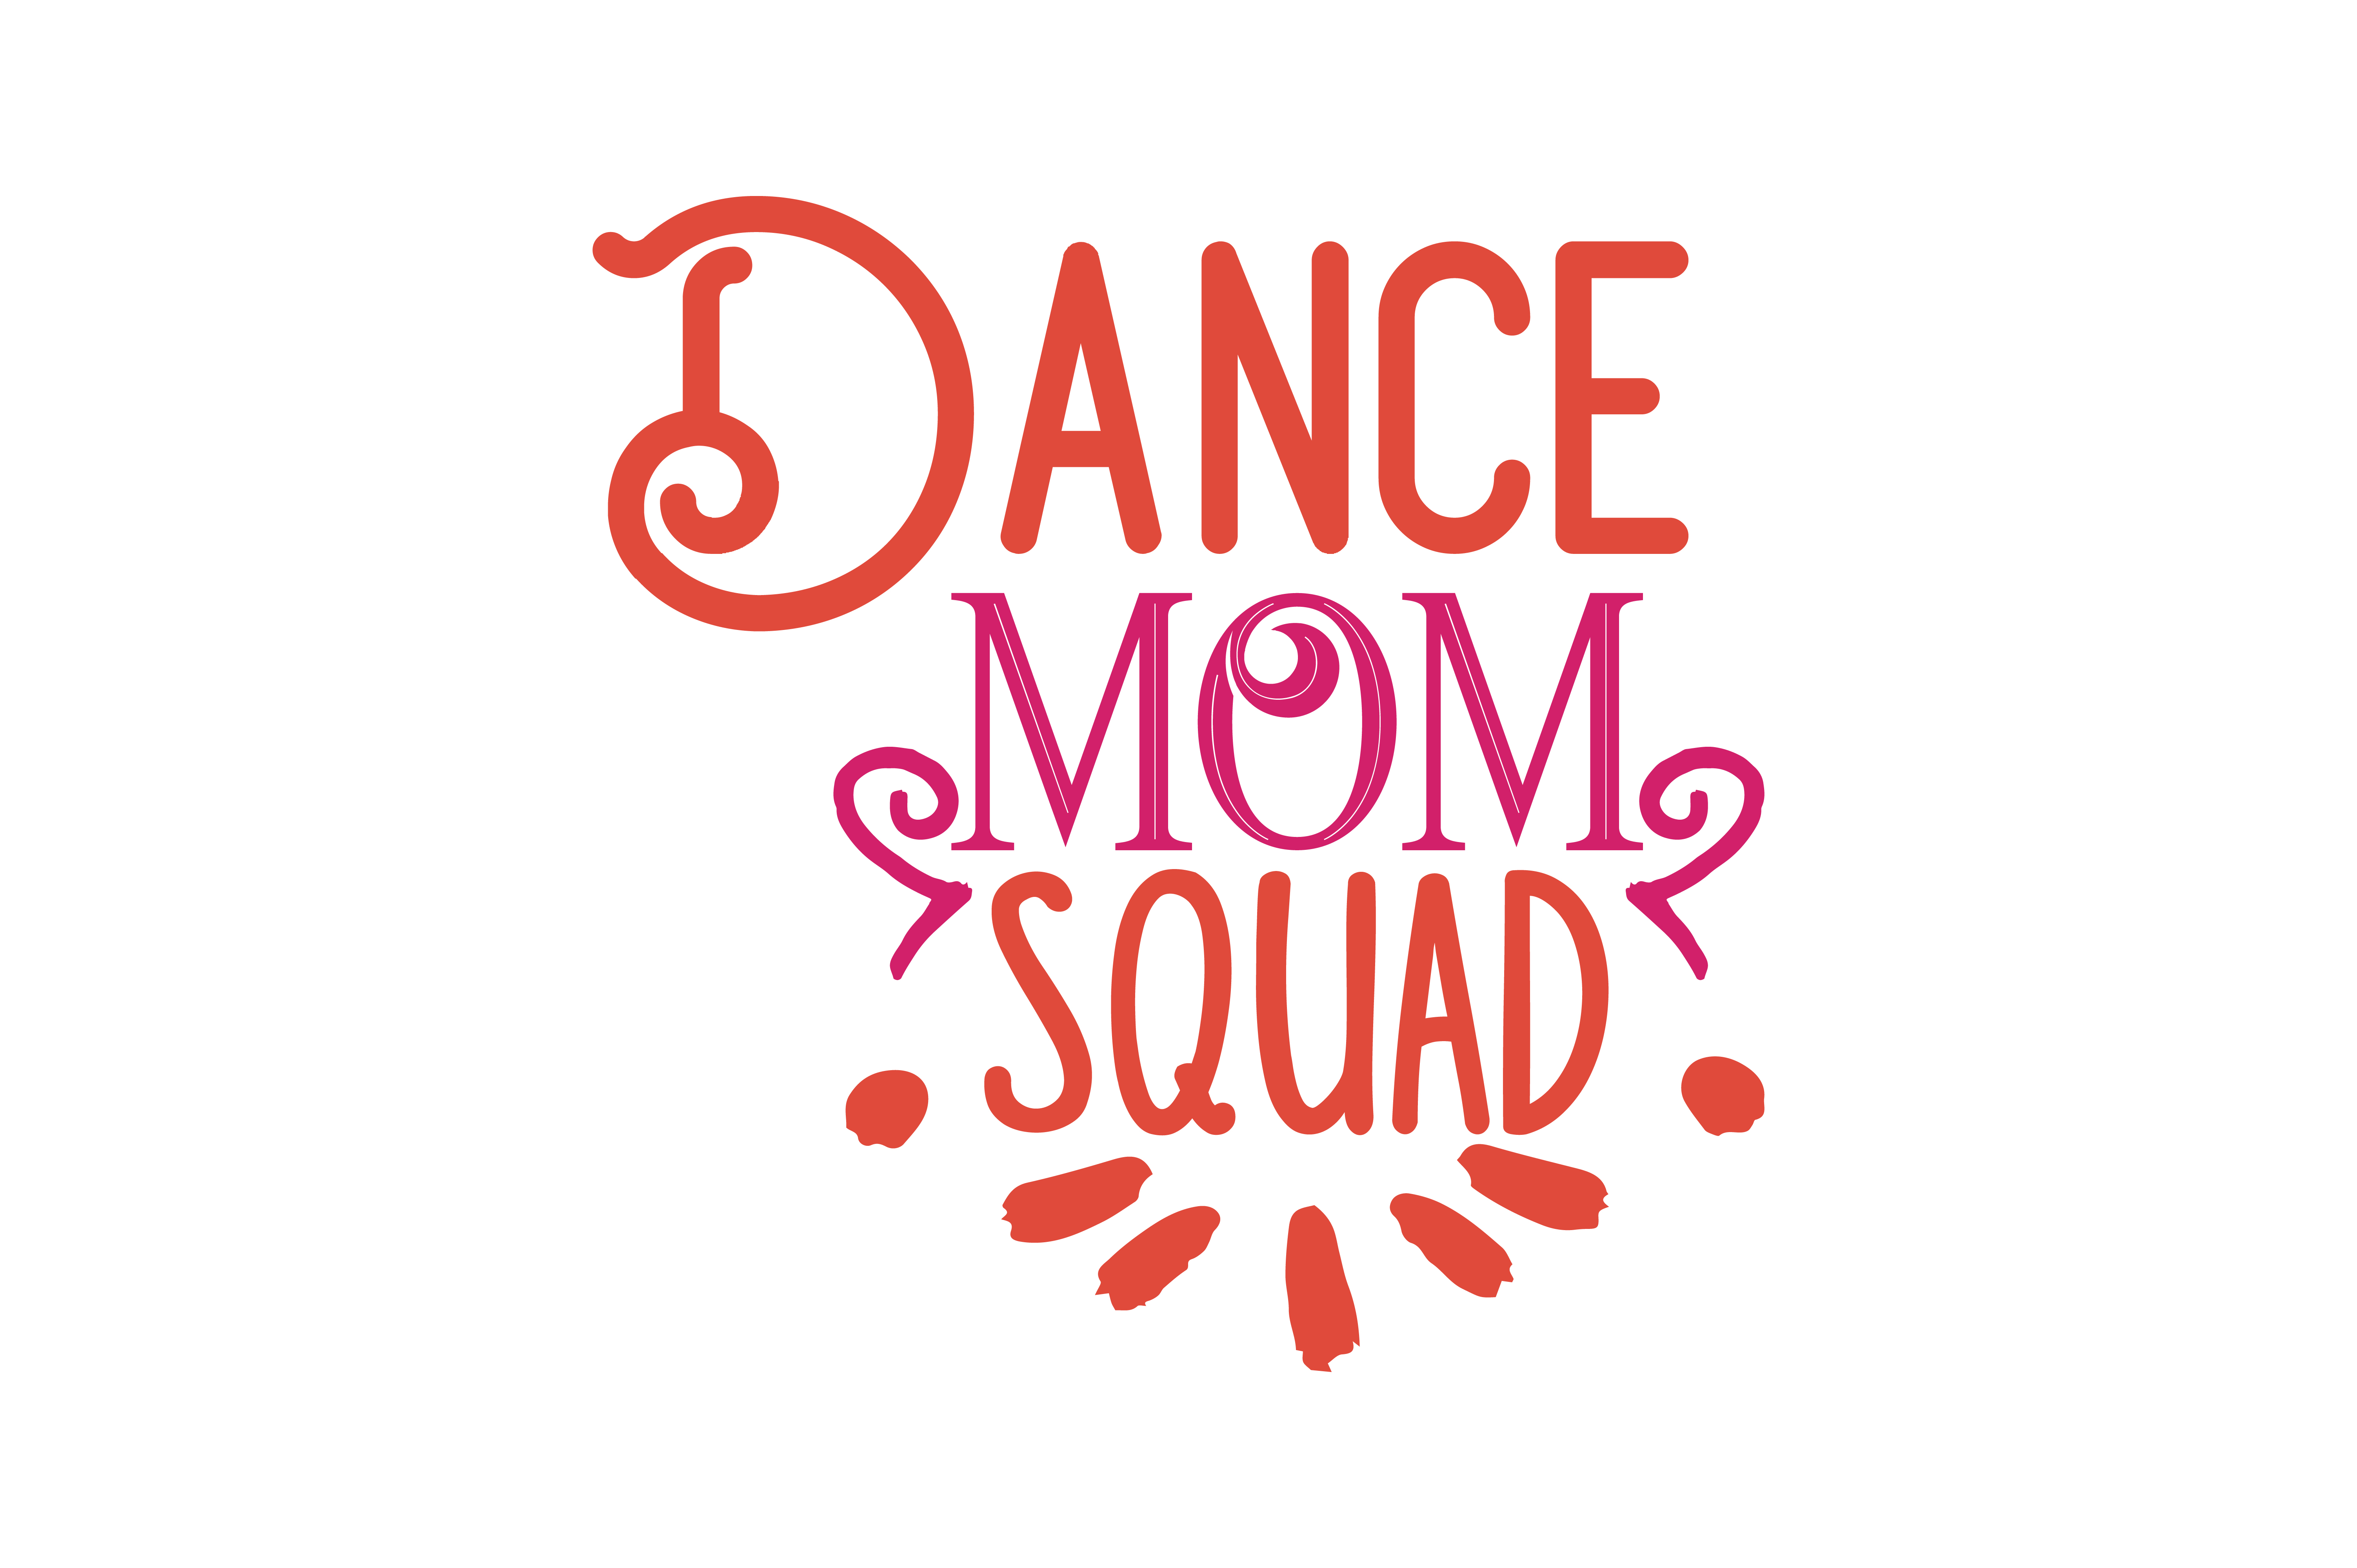 Download Free Dance Mom Squad Quote Svg Cut Graphic By Thelucky Creative Fabrica for Cricut Explore, Silhouette and other cutting machines.